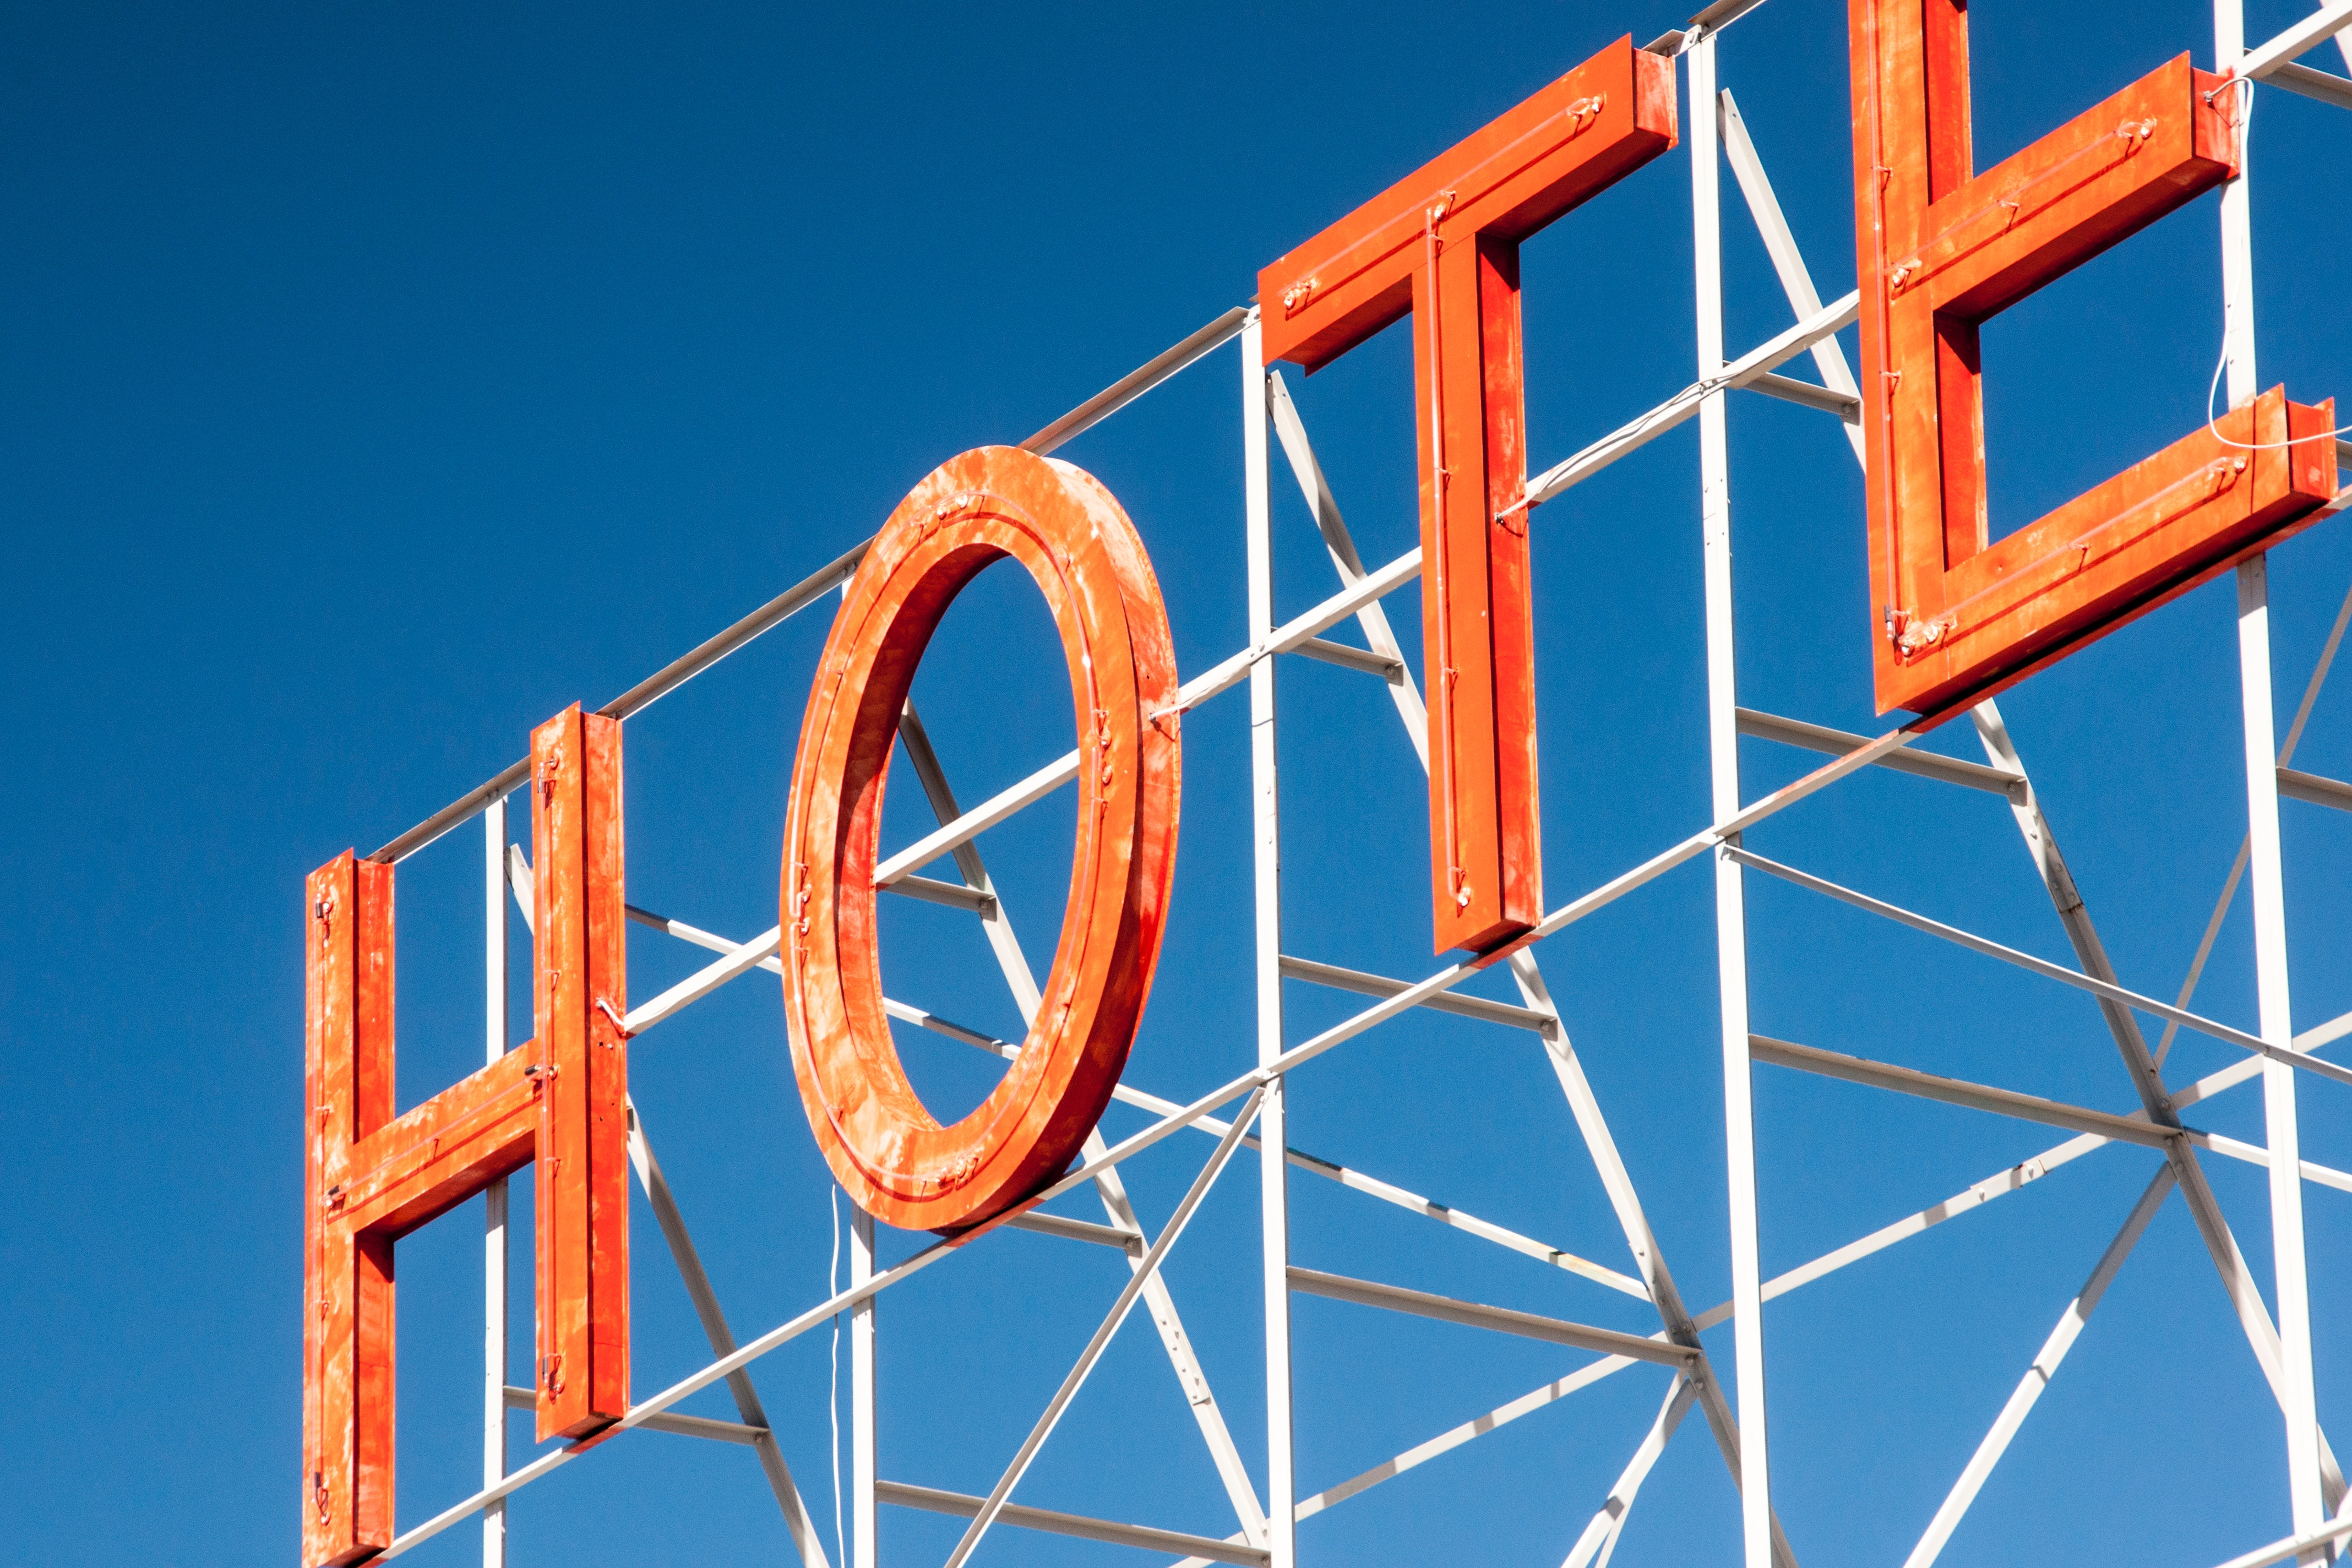 join a hotel rewards programe and save money traveling